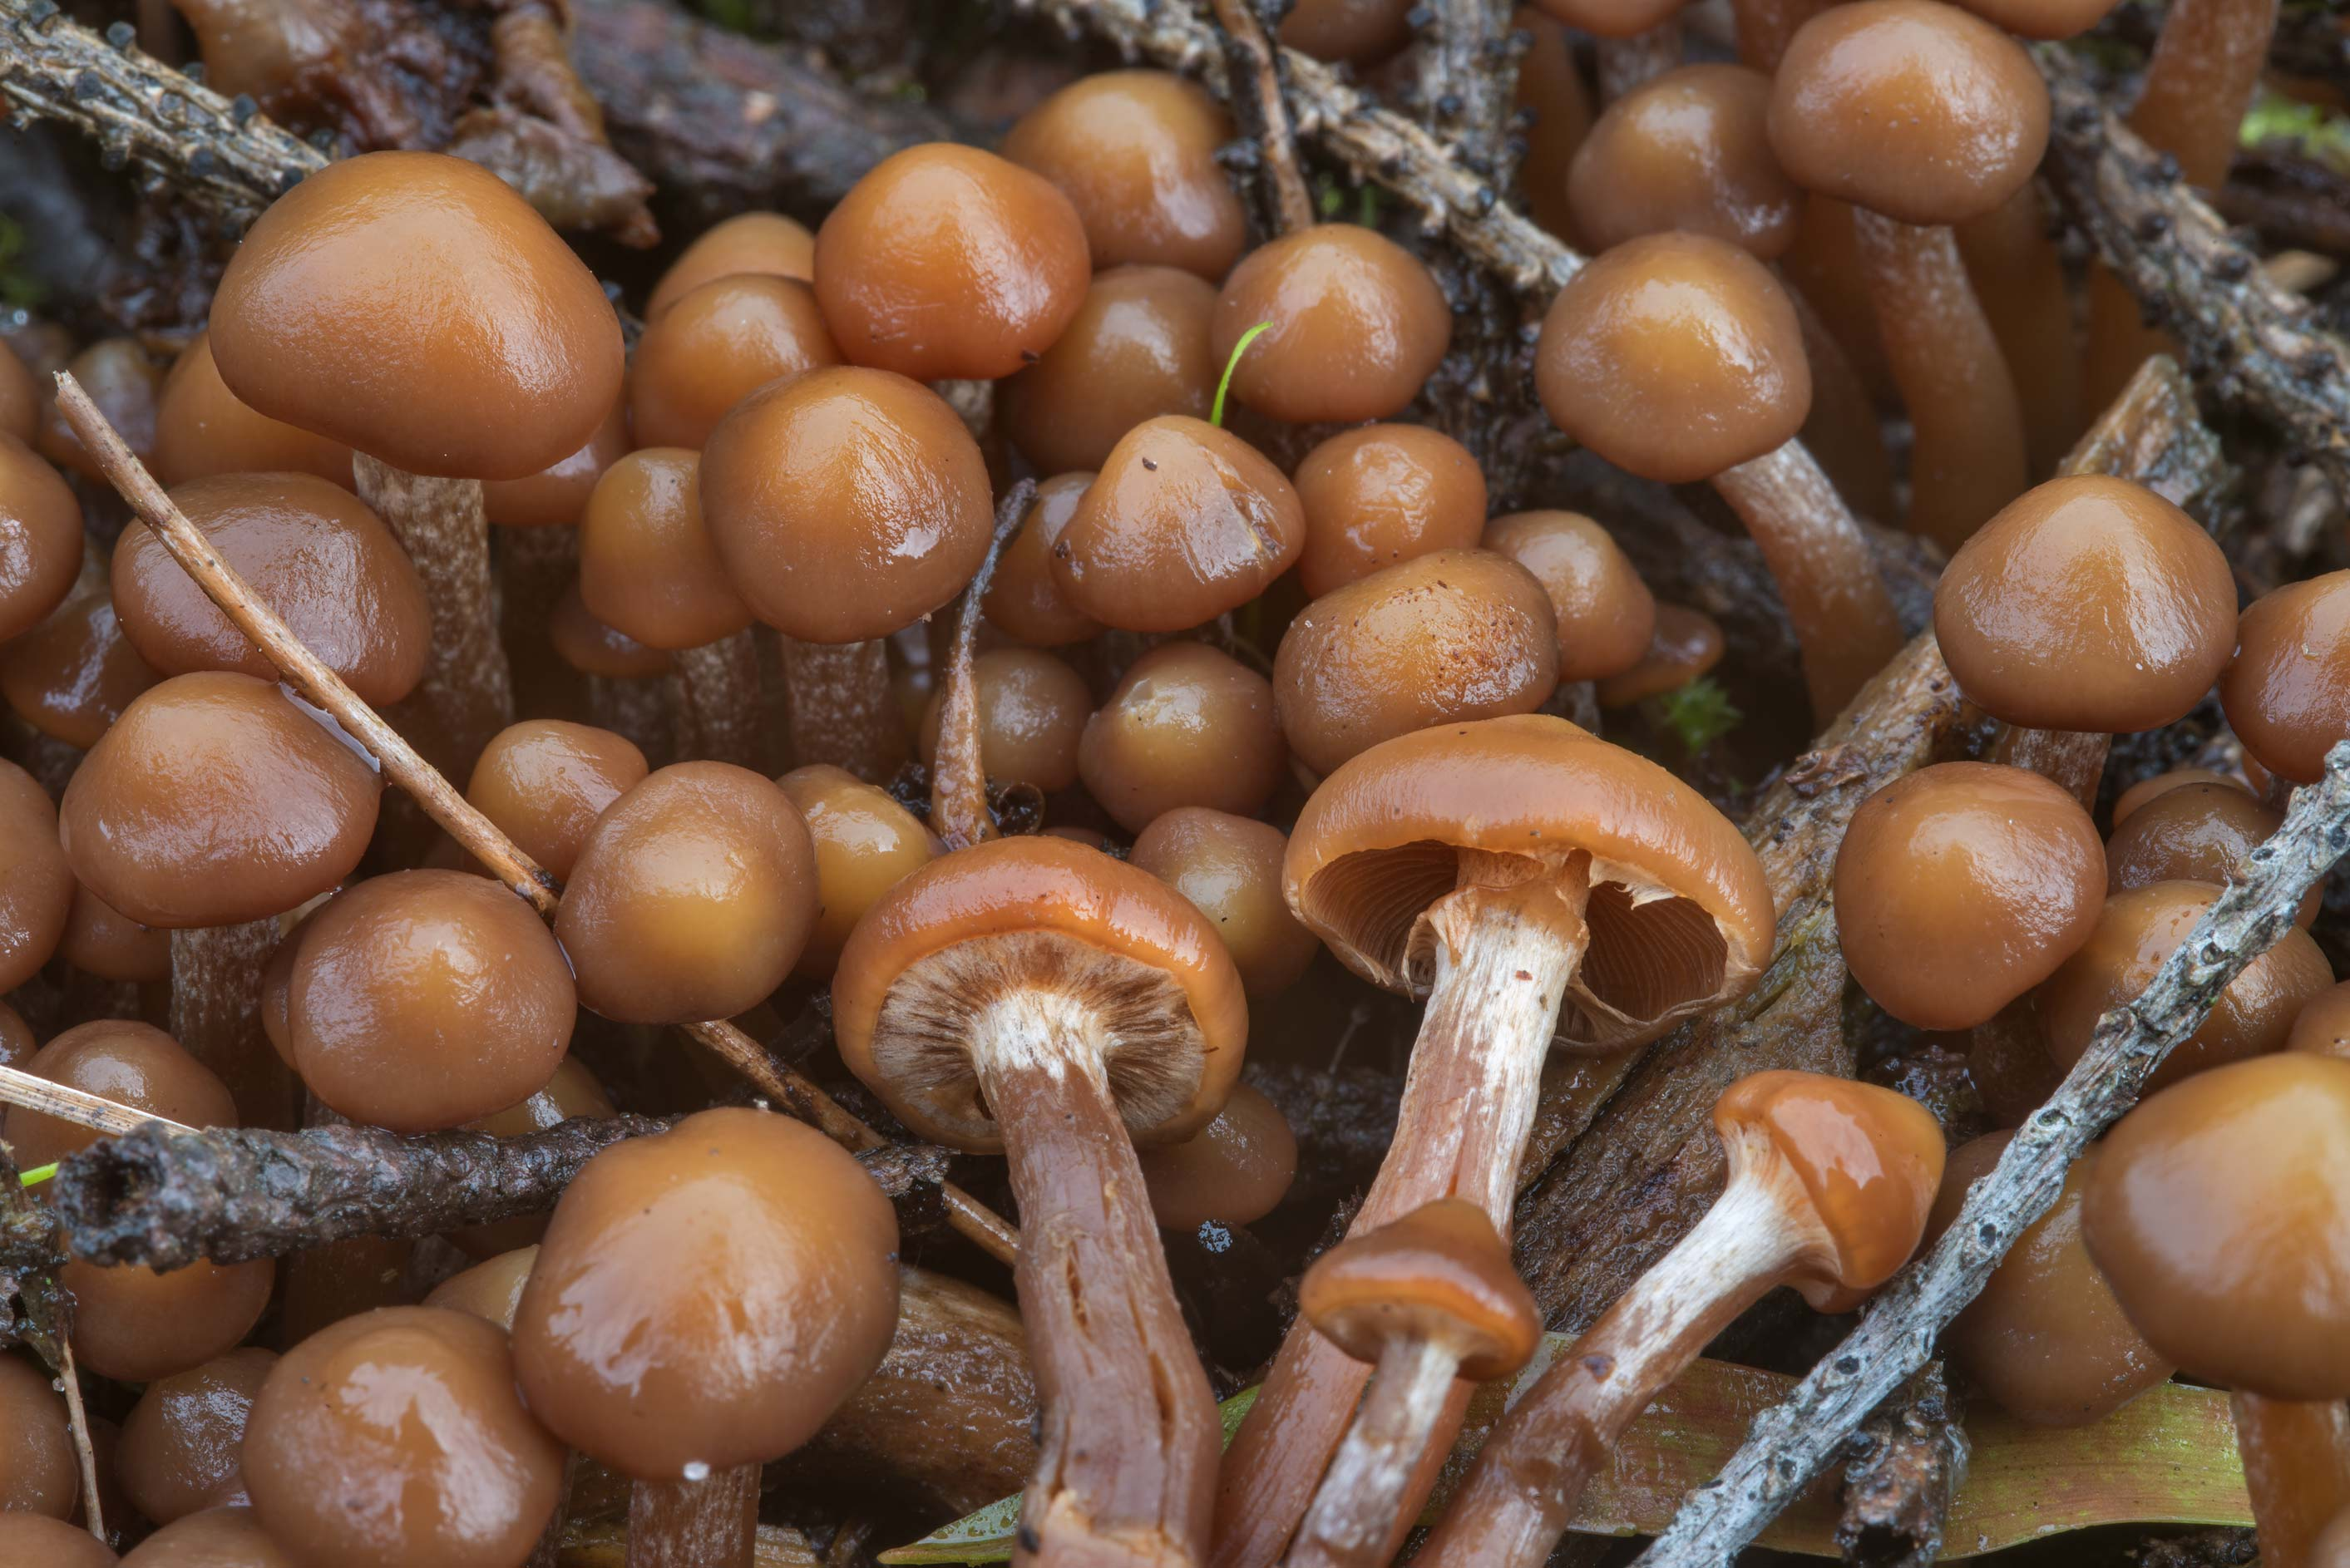 Young conifer woodtuft mushrooms (Kuehneromyces...north-west from St.Petersburg. Russia